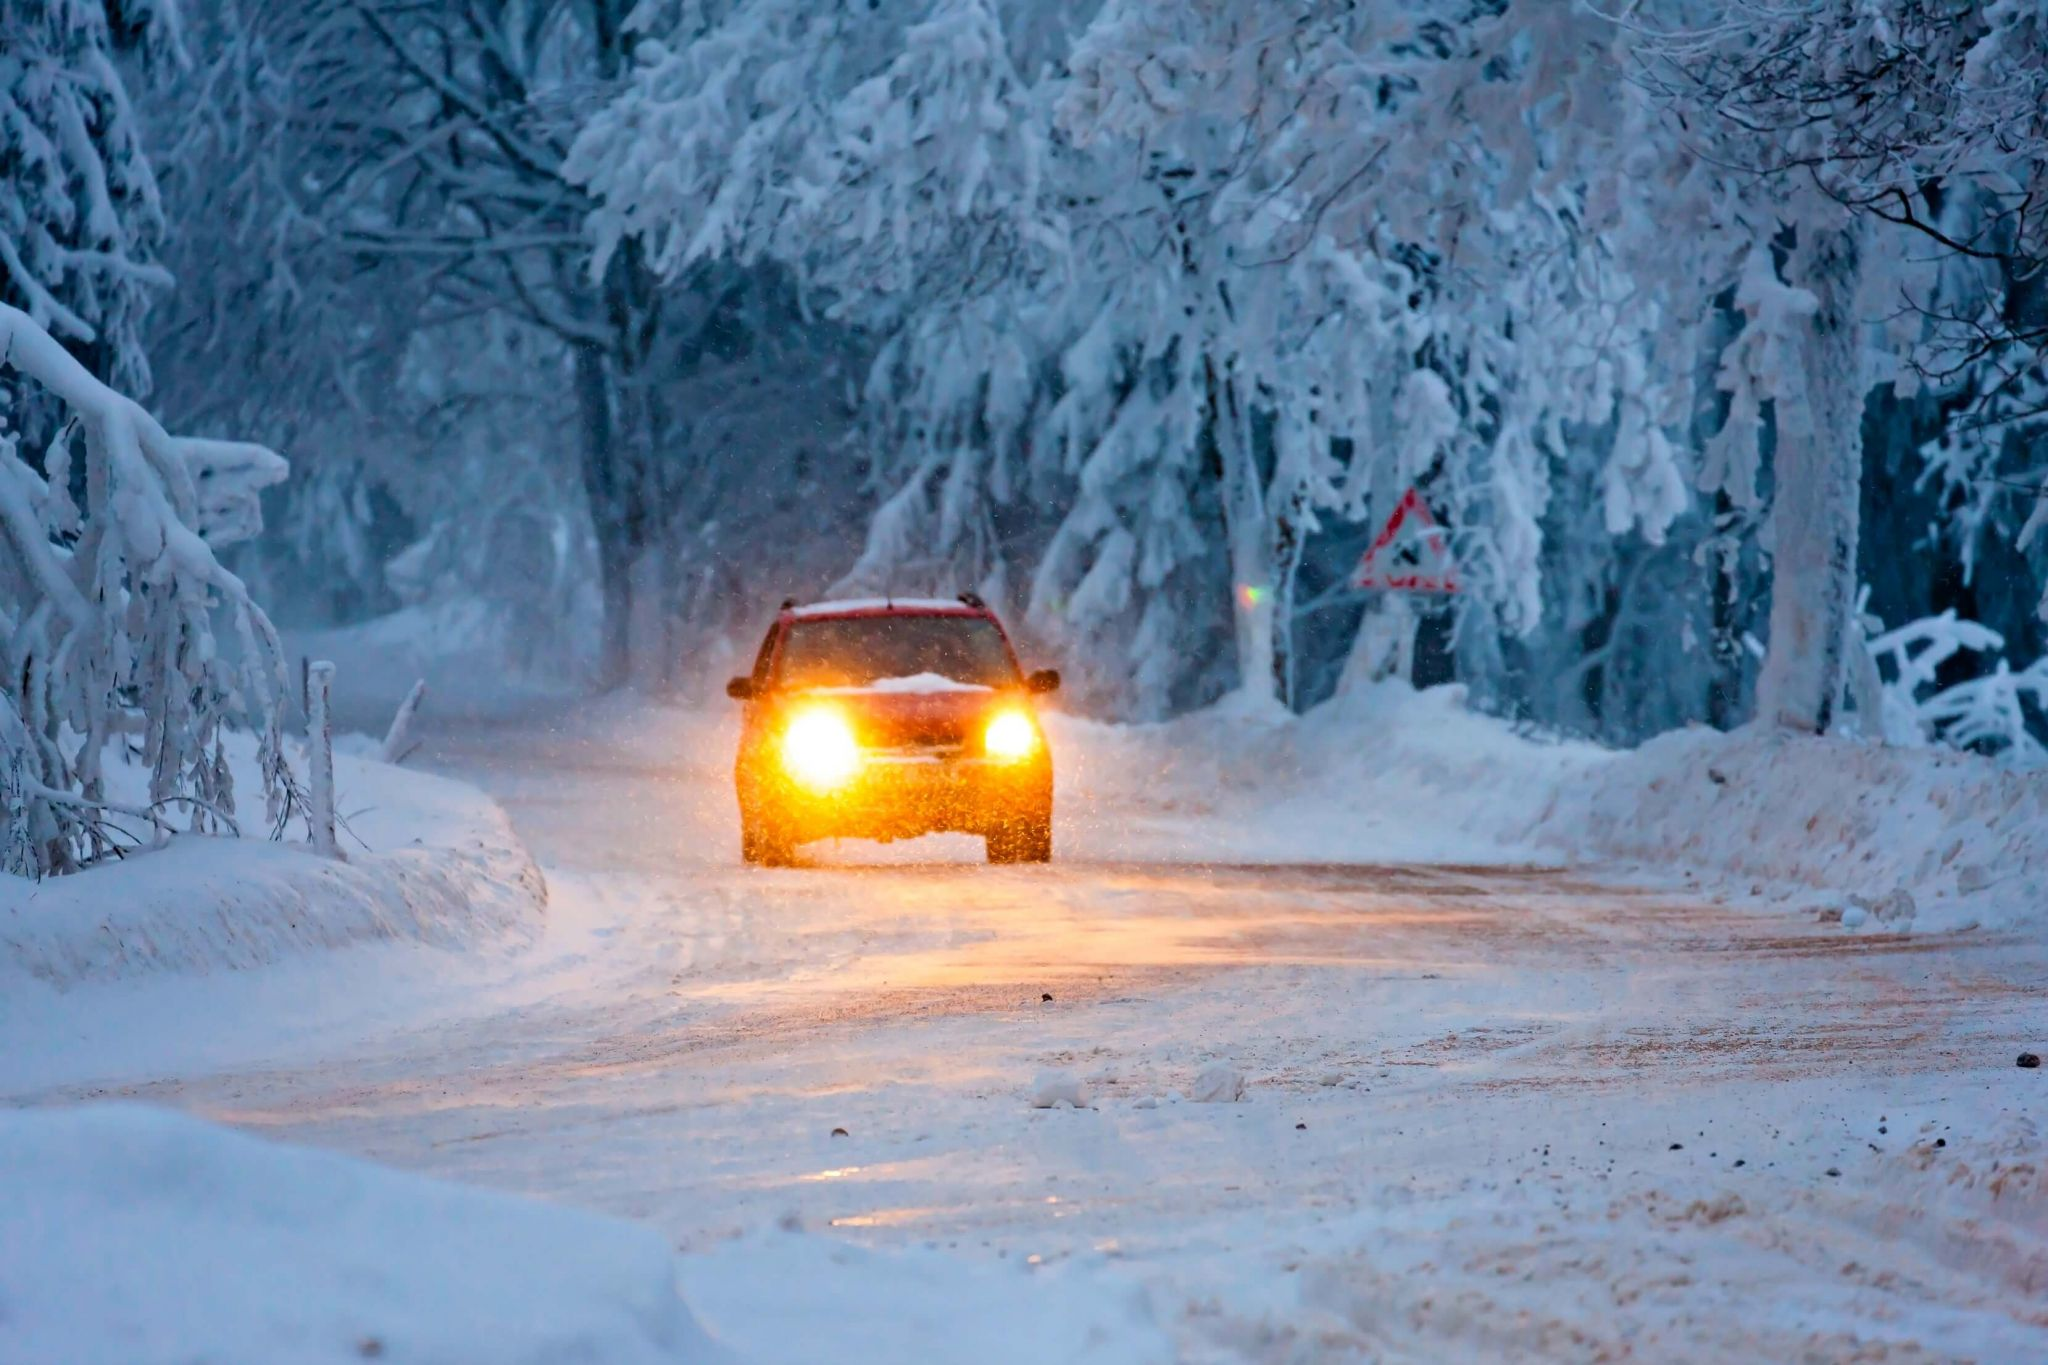 winter maintenance package - a car driving in a snowy forest